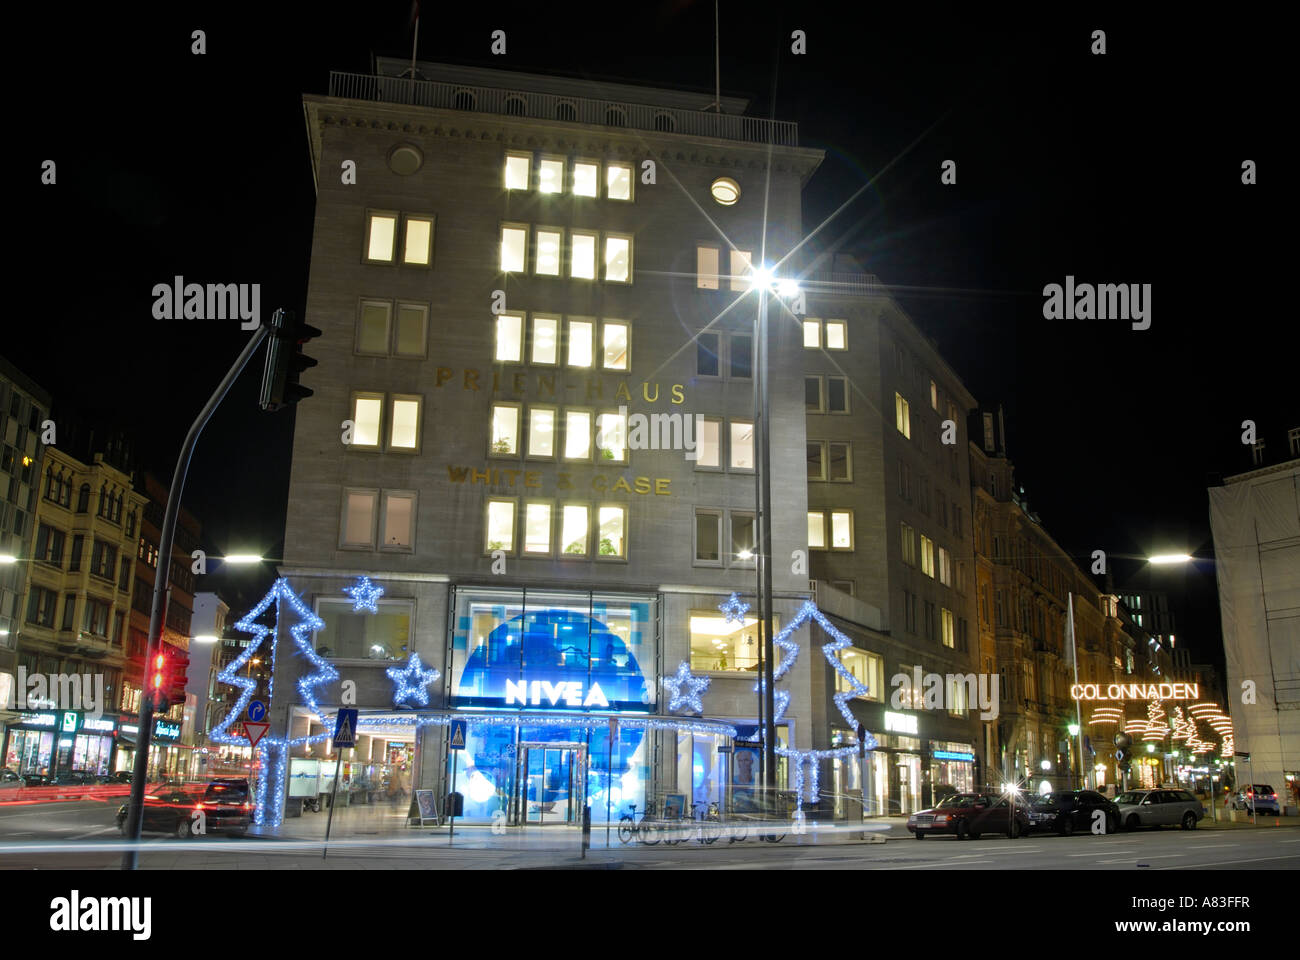 The first brand shop of NIVEA in Hamburg, Germany - Stock Image